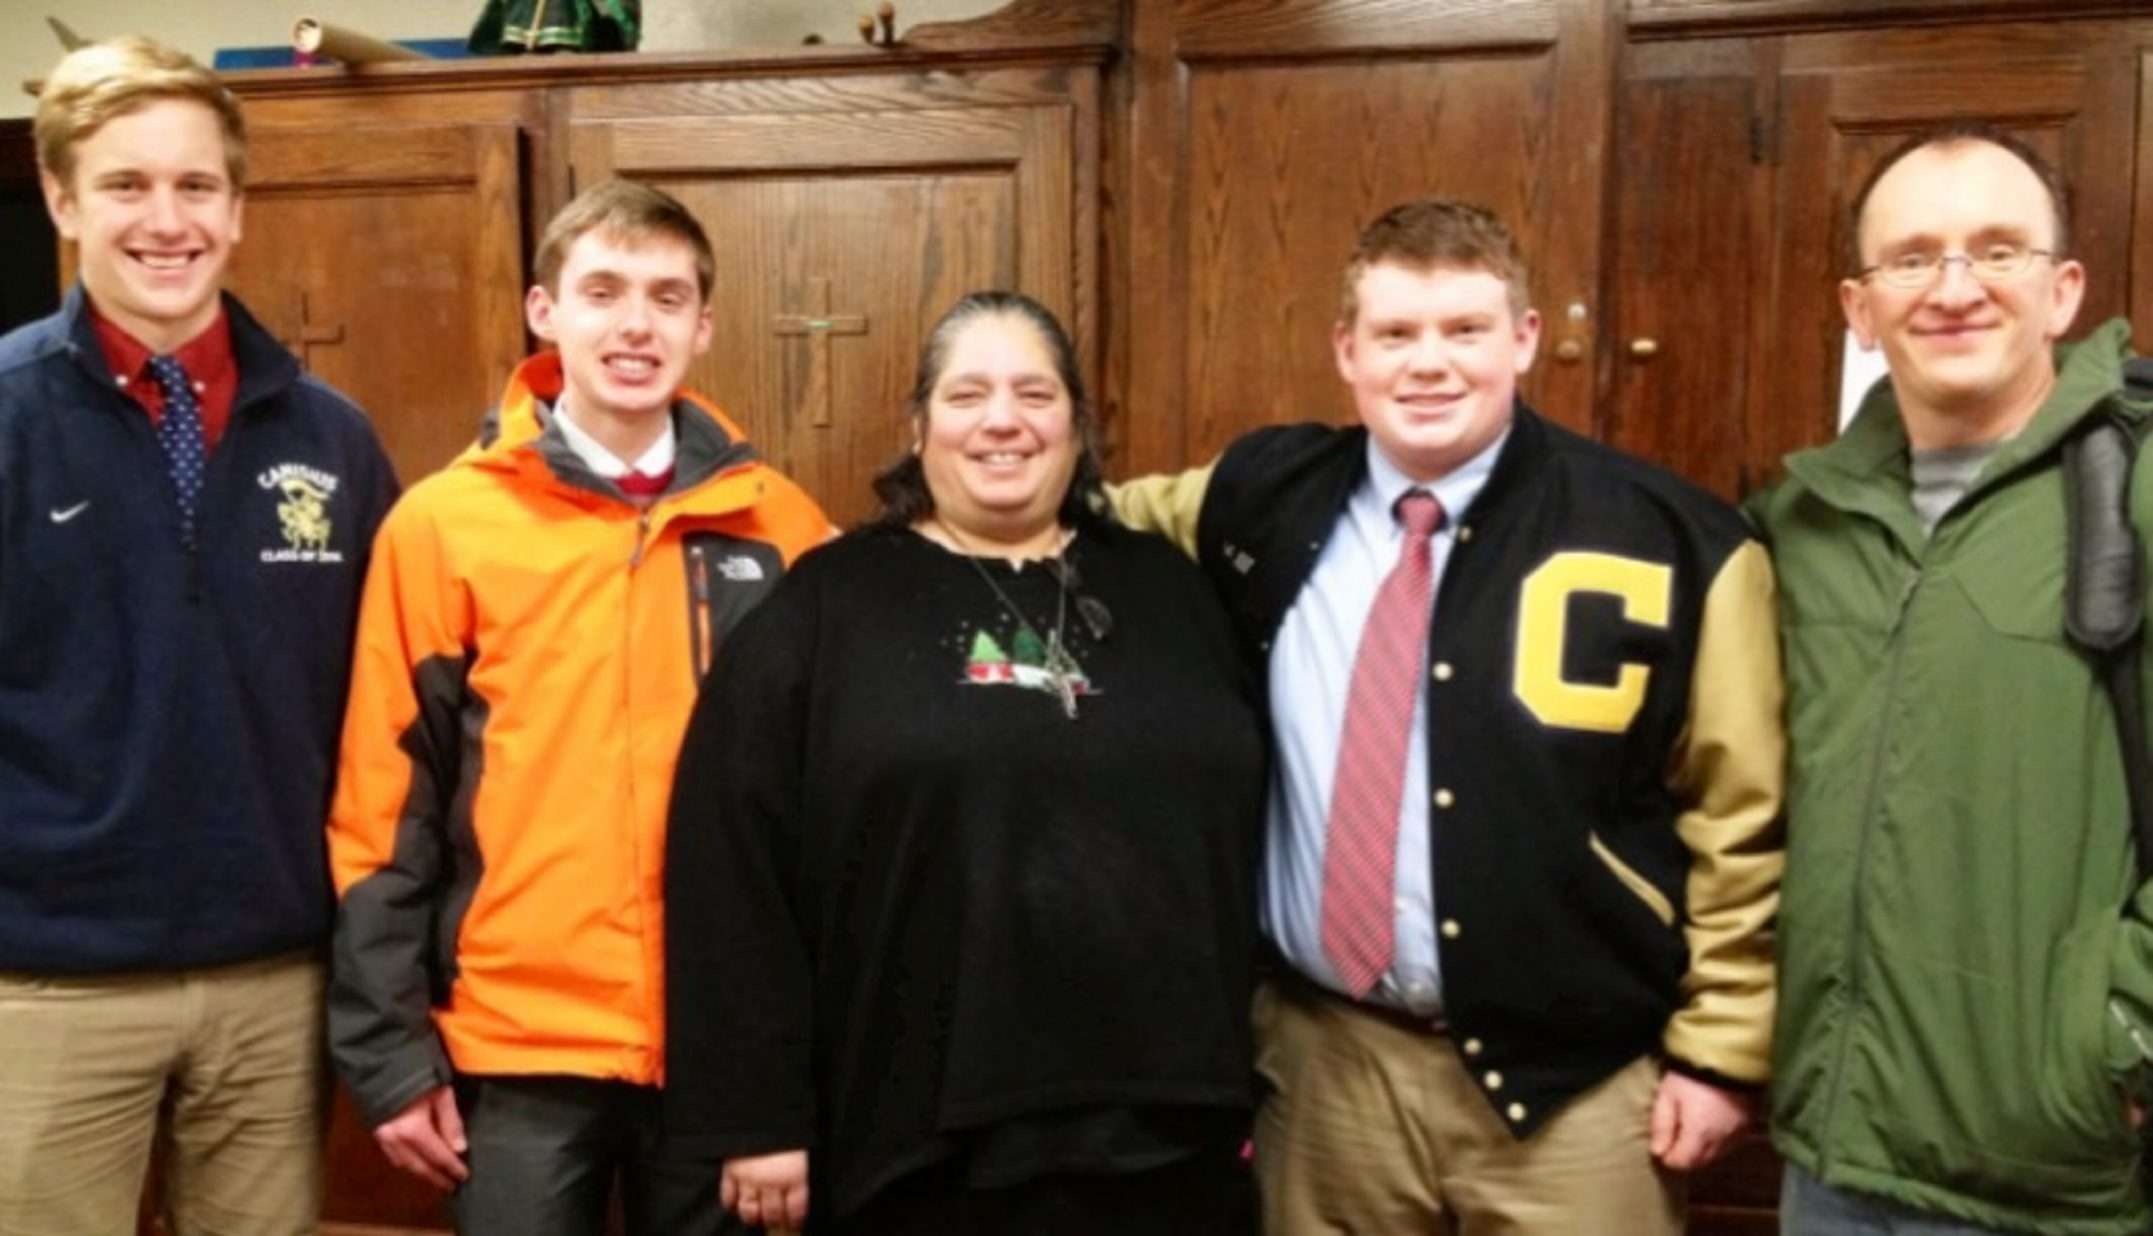 From left, Canisius students John Corr, senior; Bryan Karas, junior;  Amy (a worker at St. Luke's whose last name was not provided), Frank Fialkewicz III, junior; and Ron Aherns.